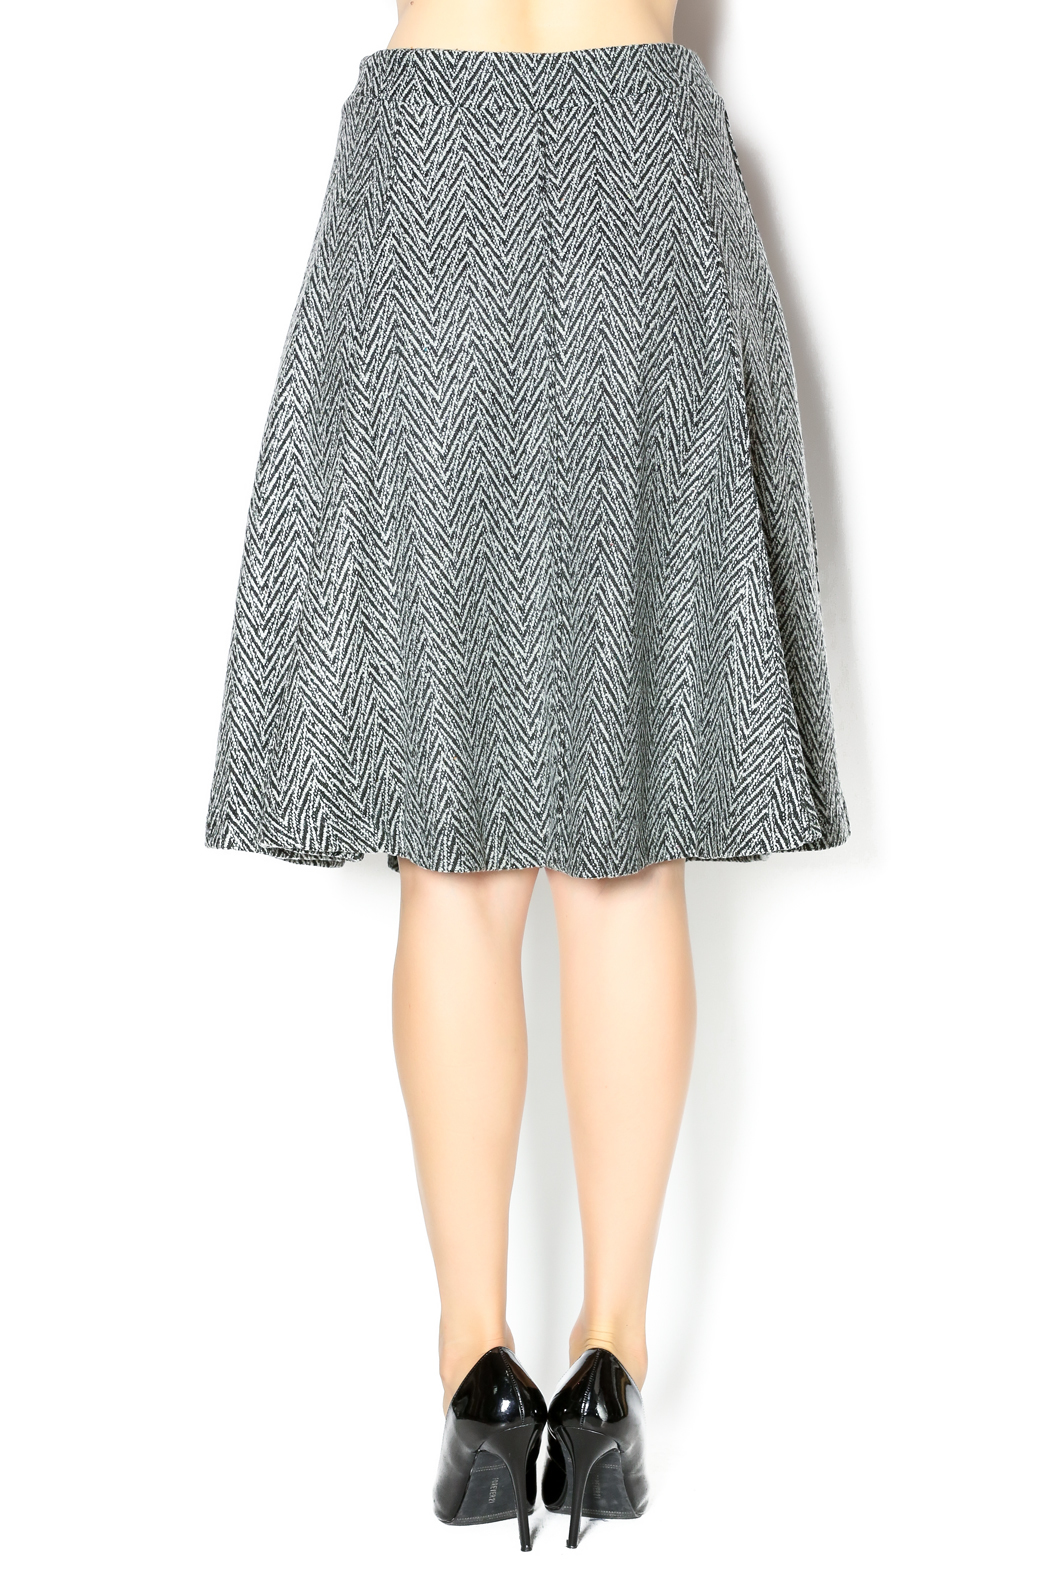 junee Wool Chevron Skirt - Back Cropped Image